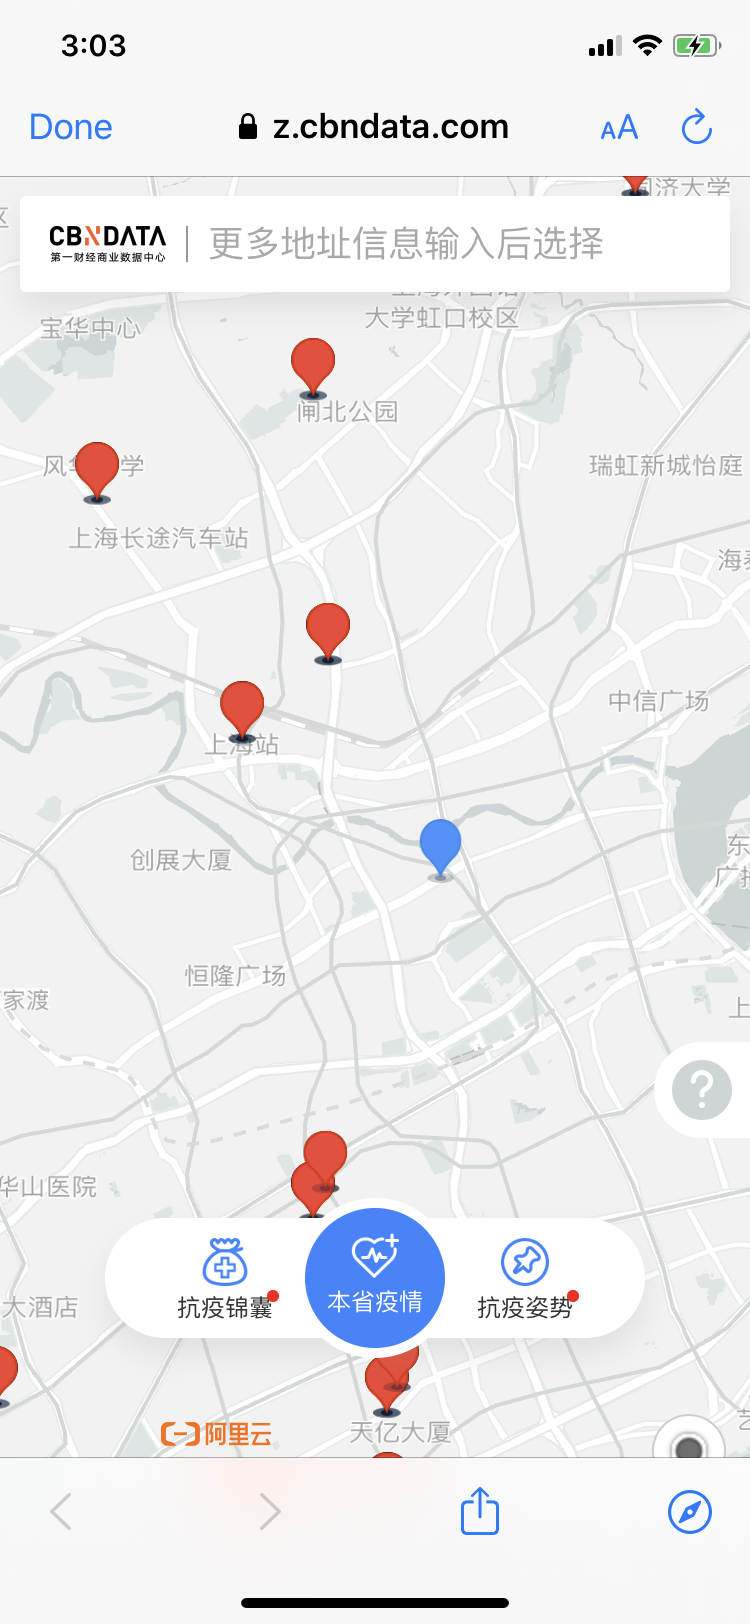 app map image showing red markers to indicate the location of people with confirmed virus